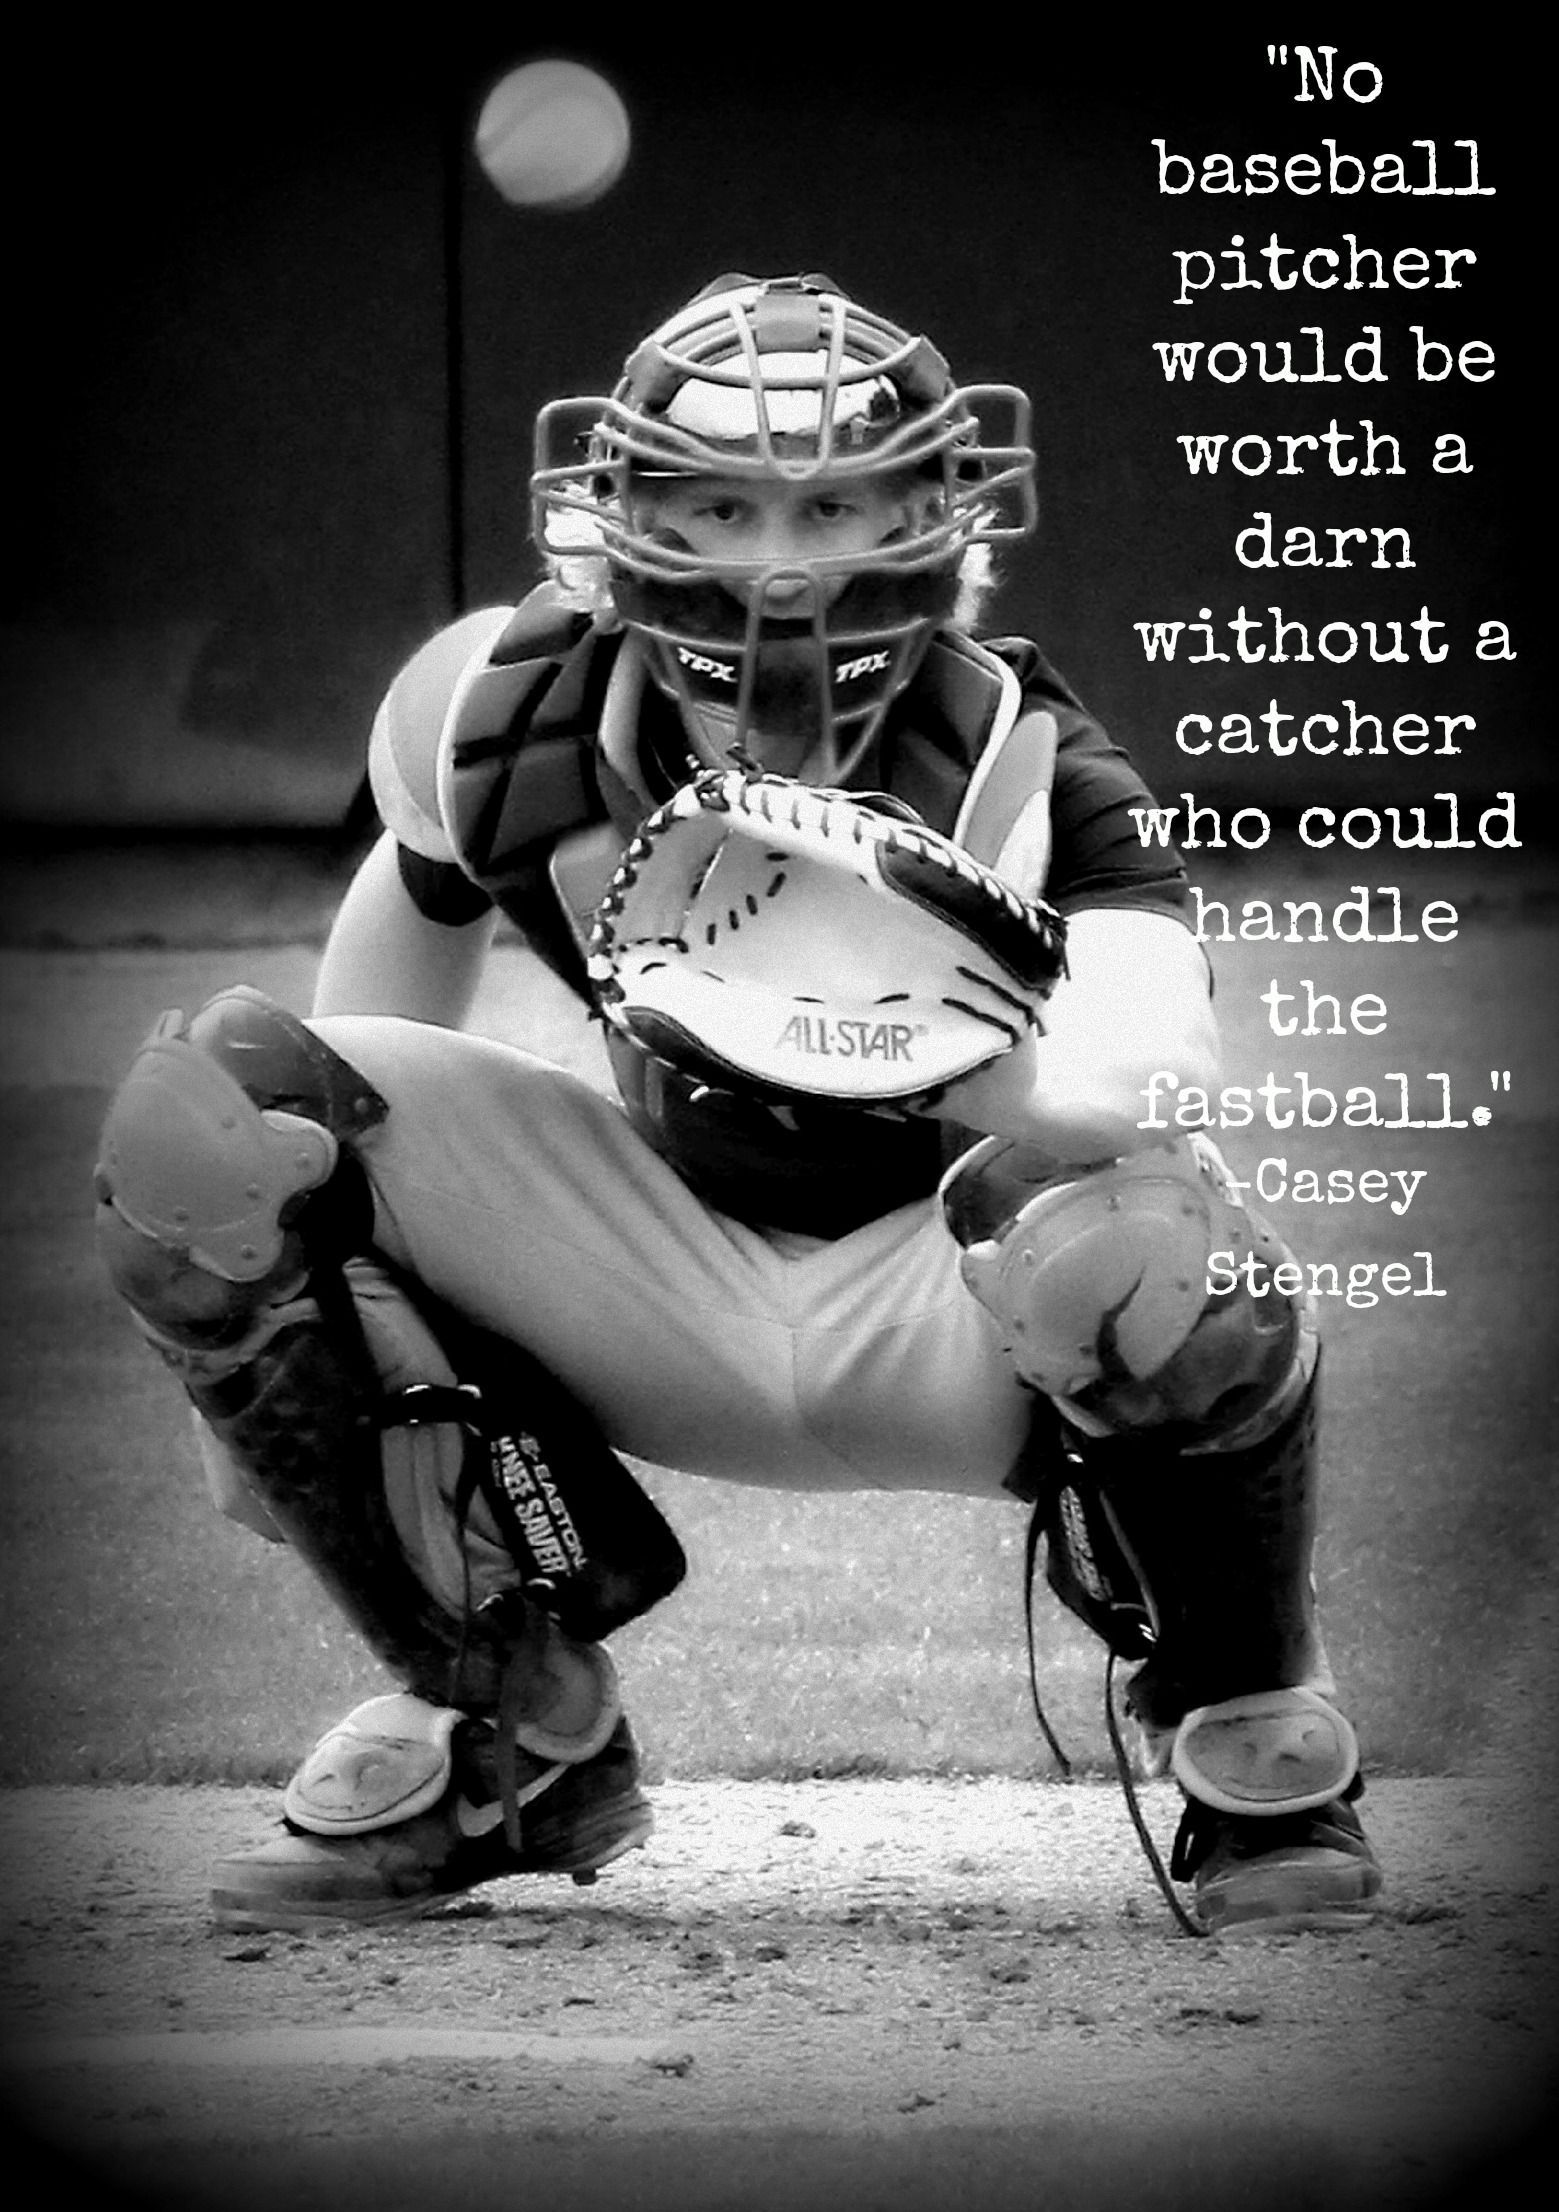 No baseball pitcher would be worth a darn without a catcher who ...